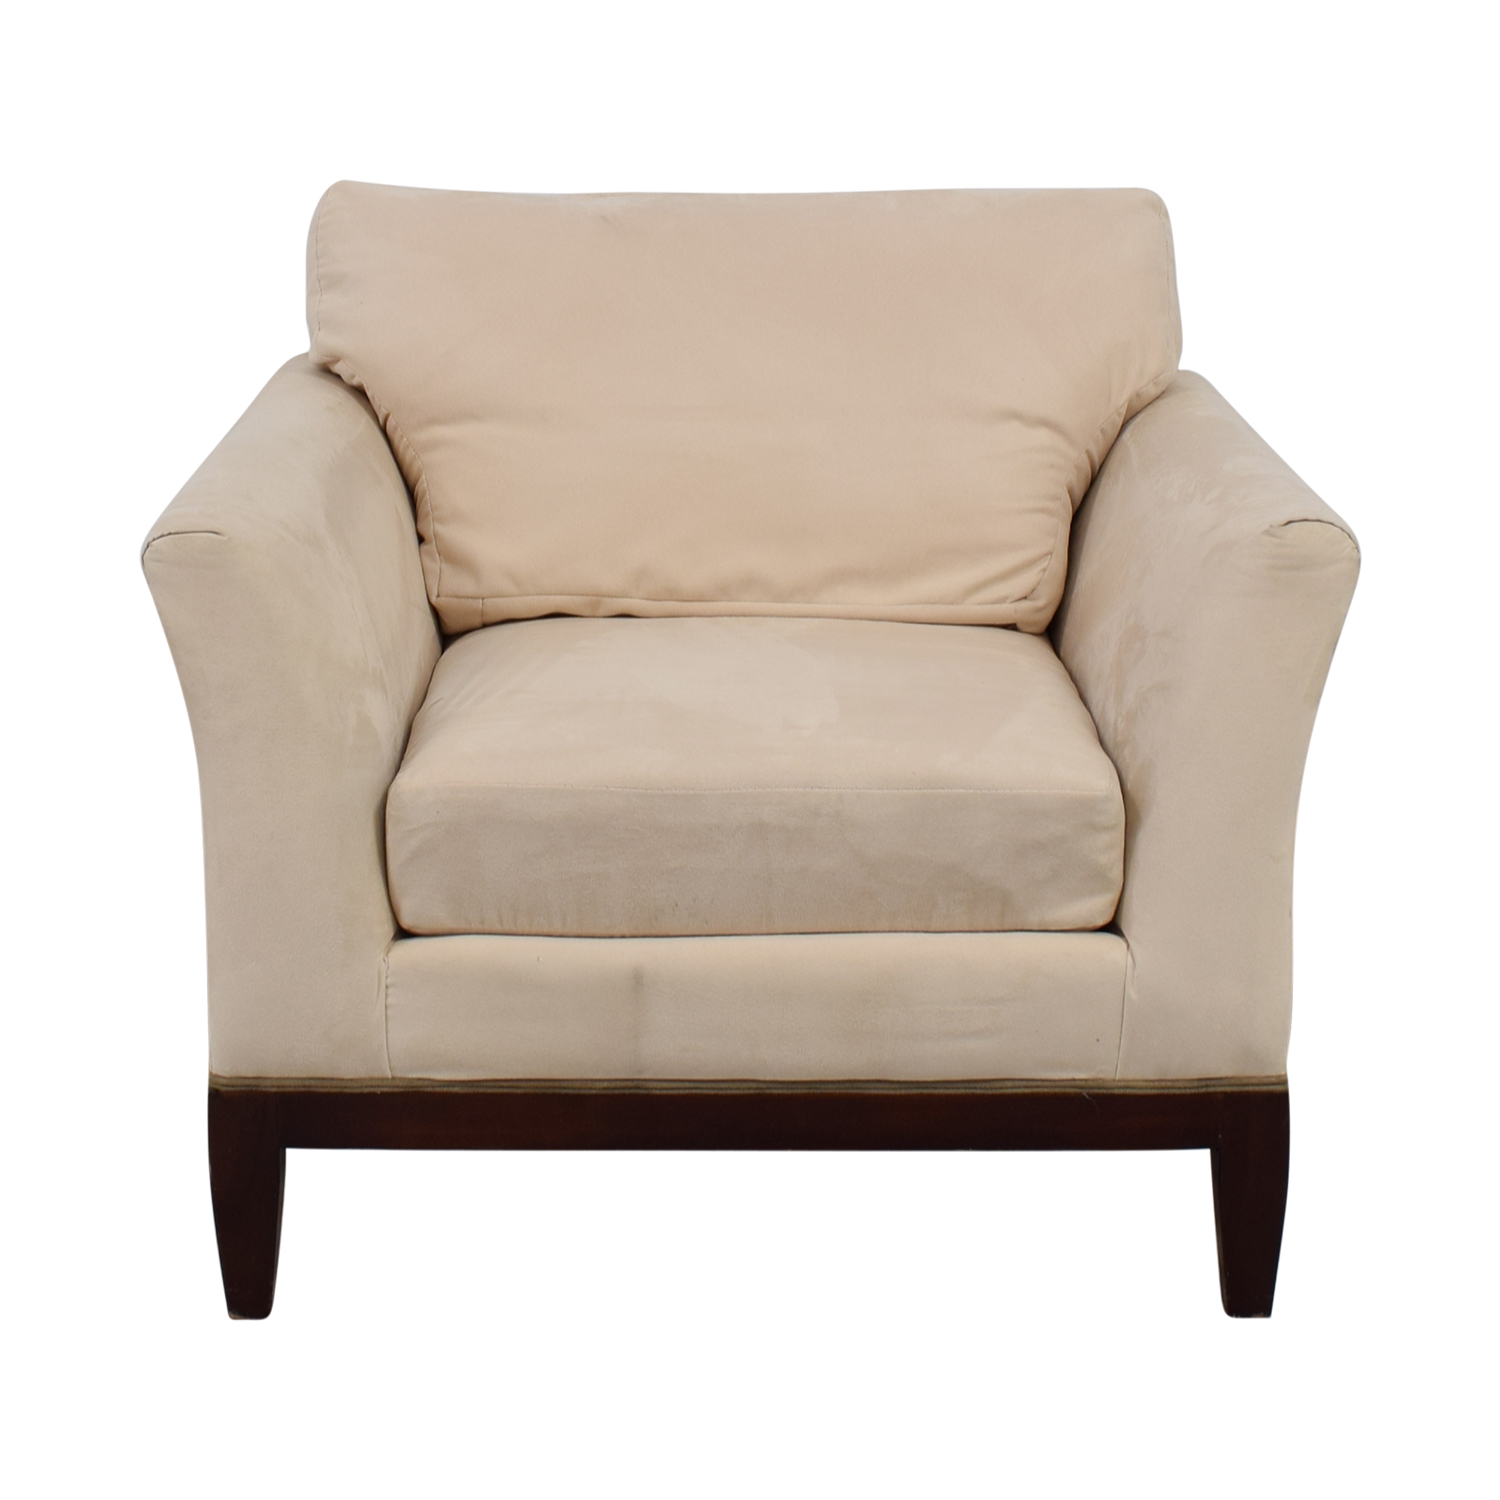 Woodmark Woodmark White Accent Chair nj